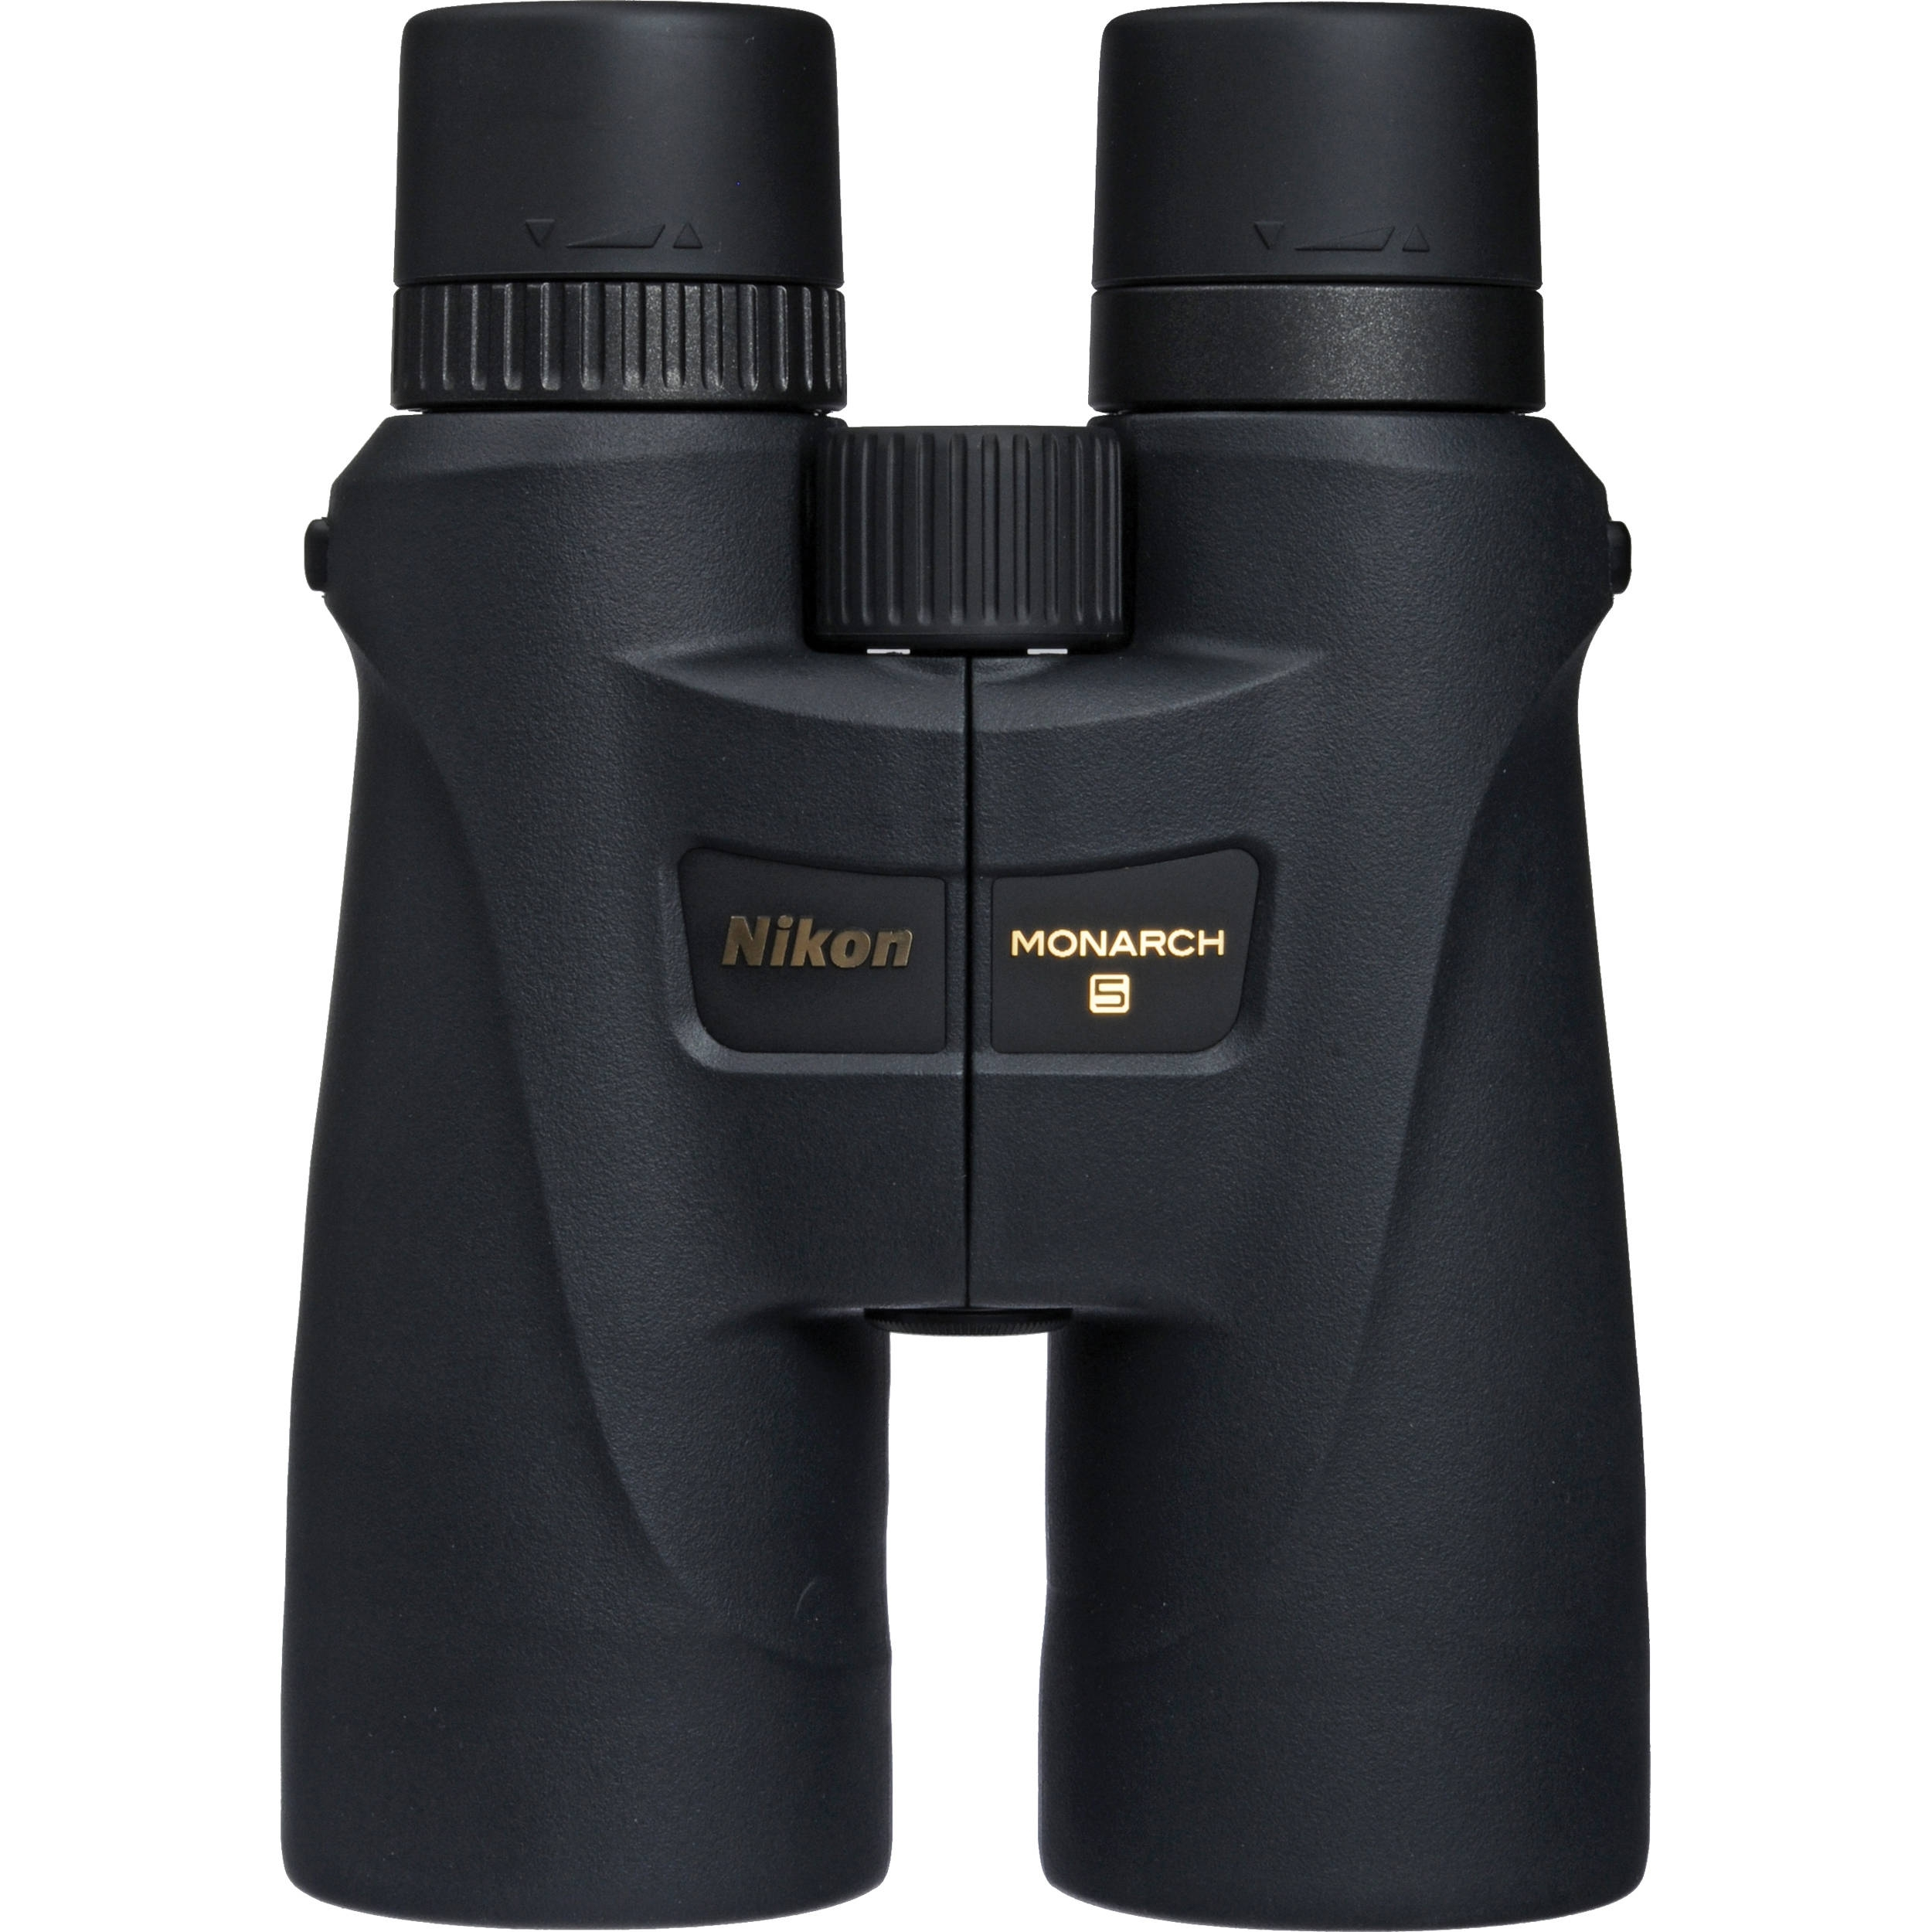 Nikon Fernglas Monarch 5 20x56